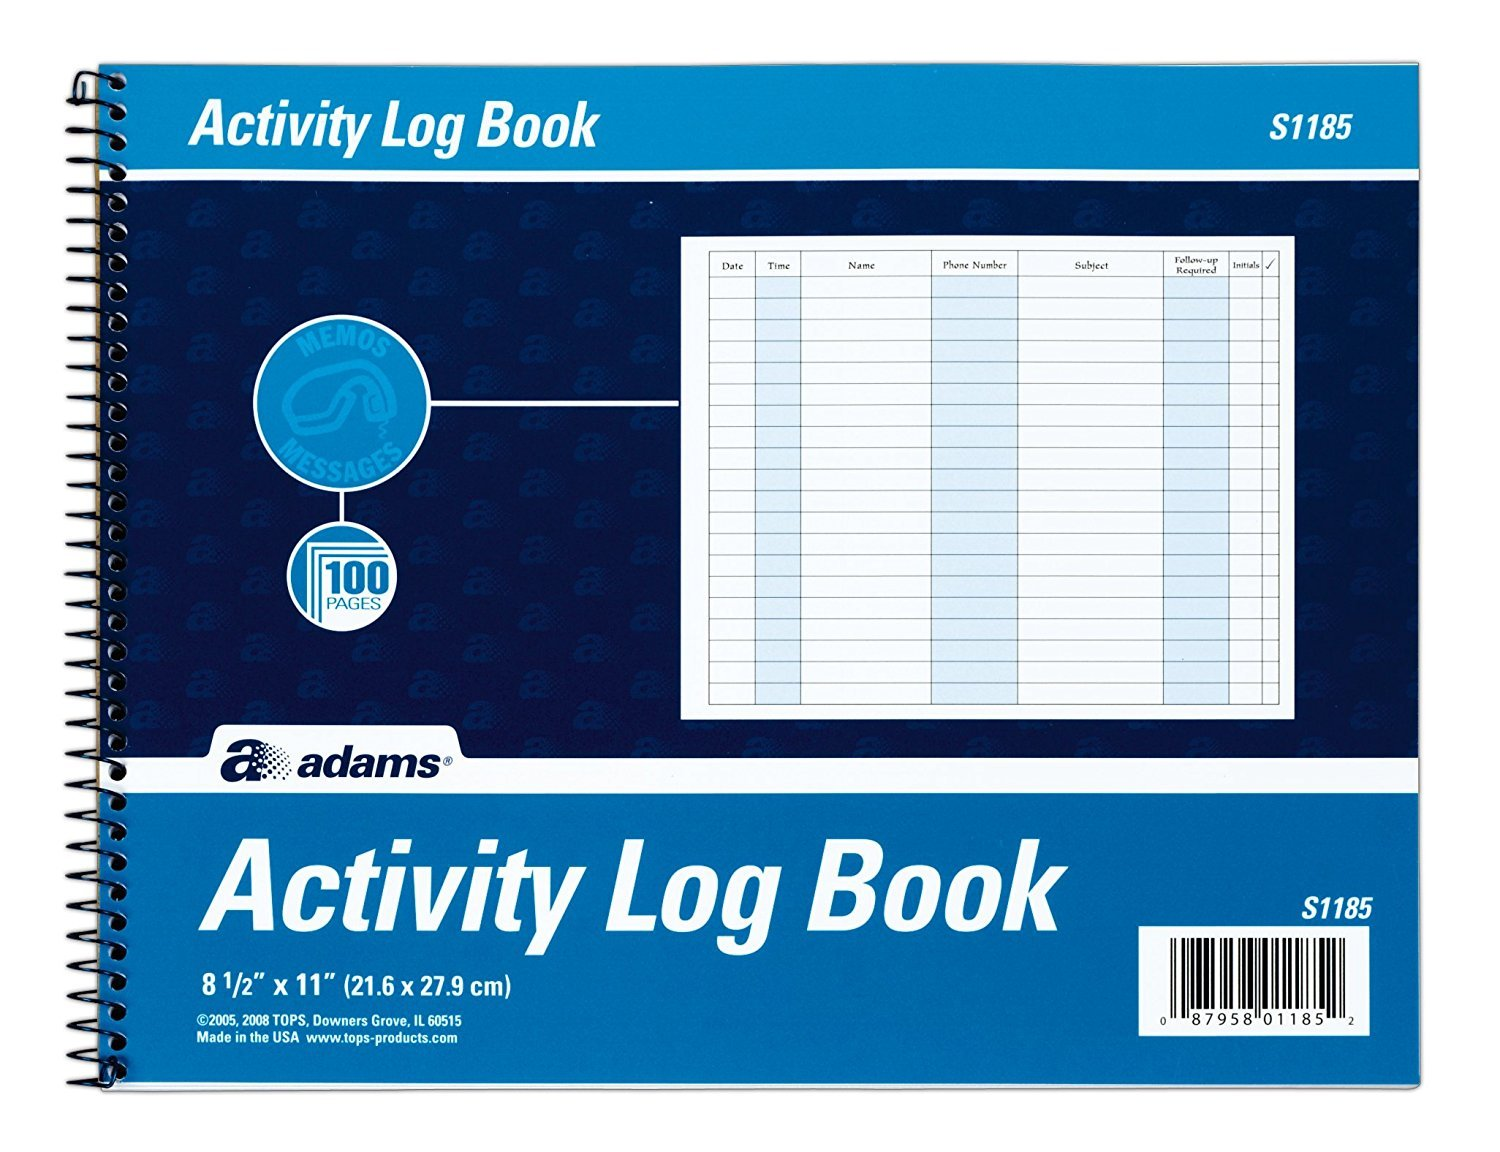 Adams Activity Log Book, Spiral Bound, 8.5 x 11 inches, 100 Pages, White (S1185ABF) (2 Pack)